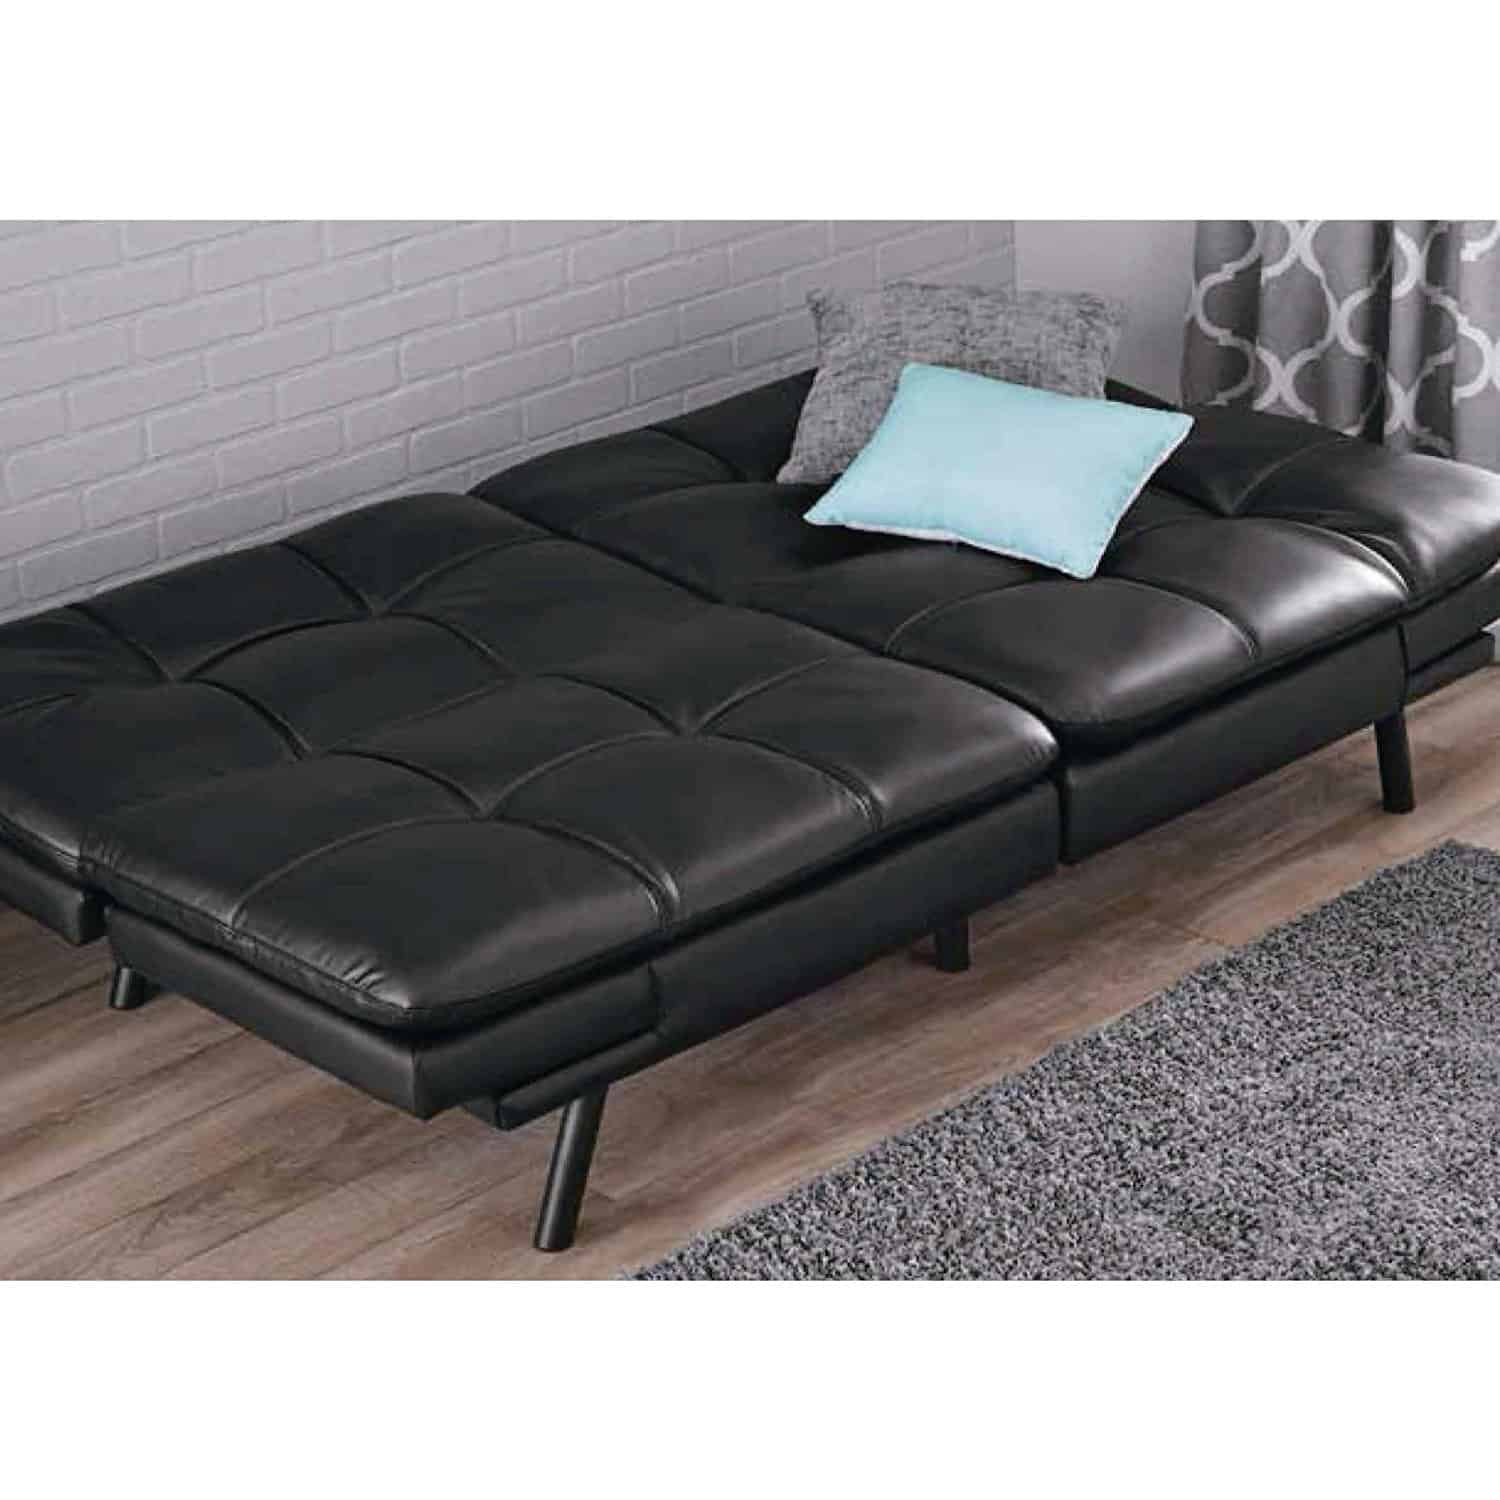 Mainstay Wooden Frame Memory Foam Futon Sofa Lounger Full Bad